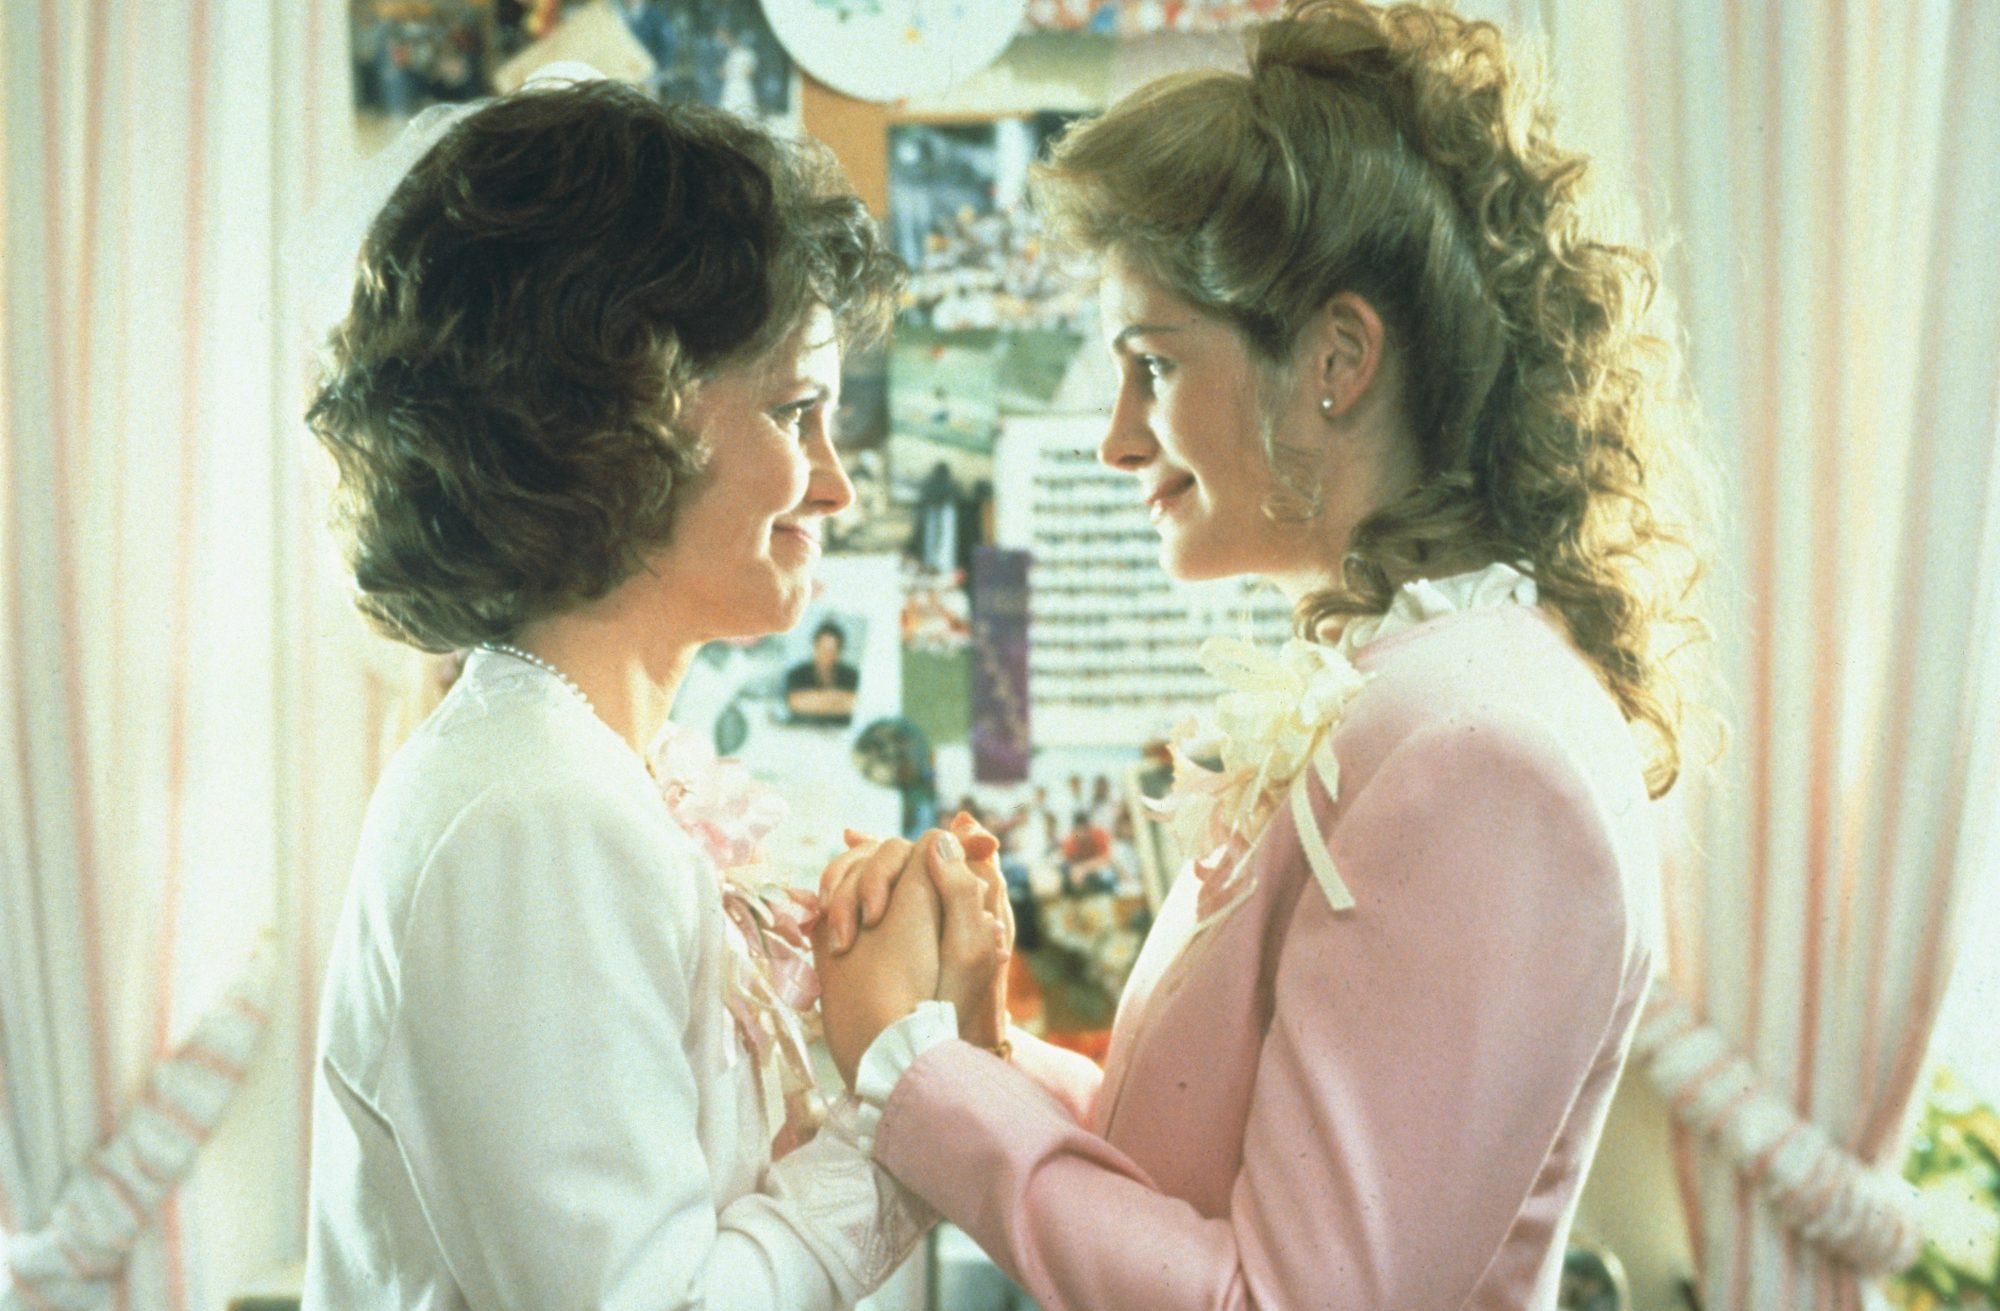 Sally Field and Julia Roberts in Steel Magnolias